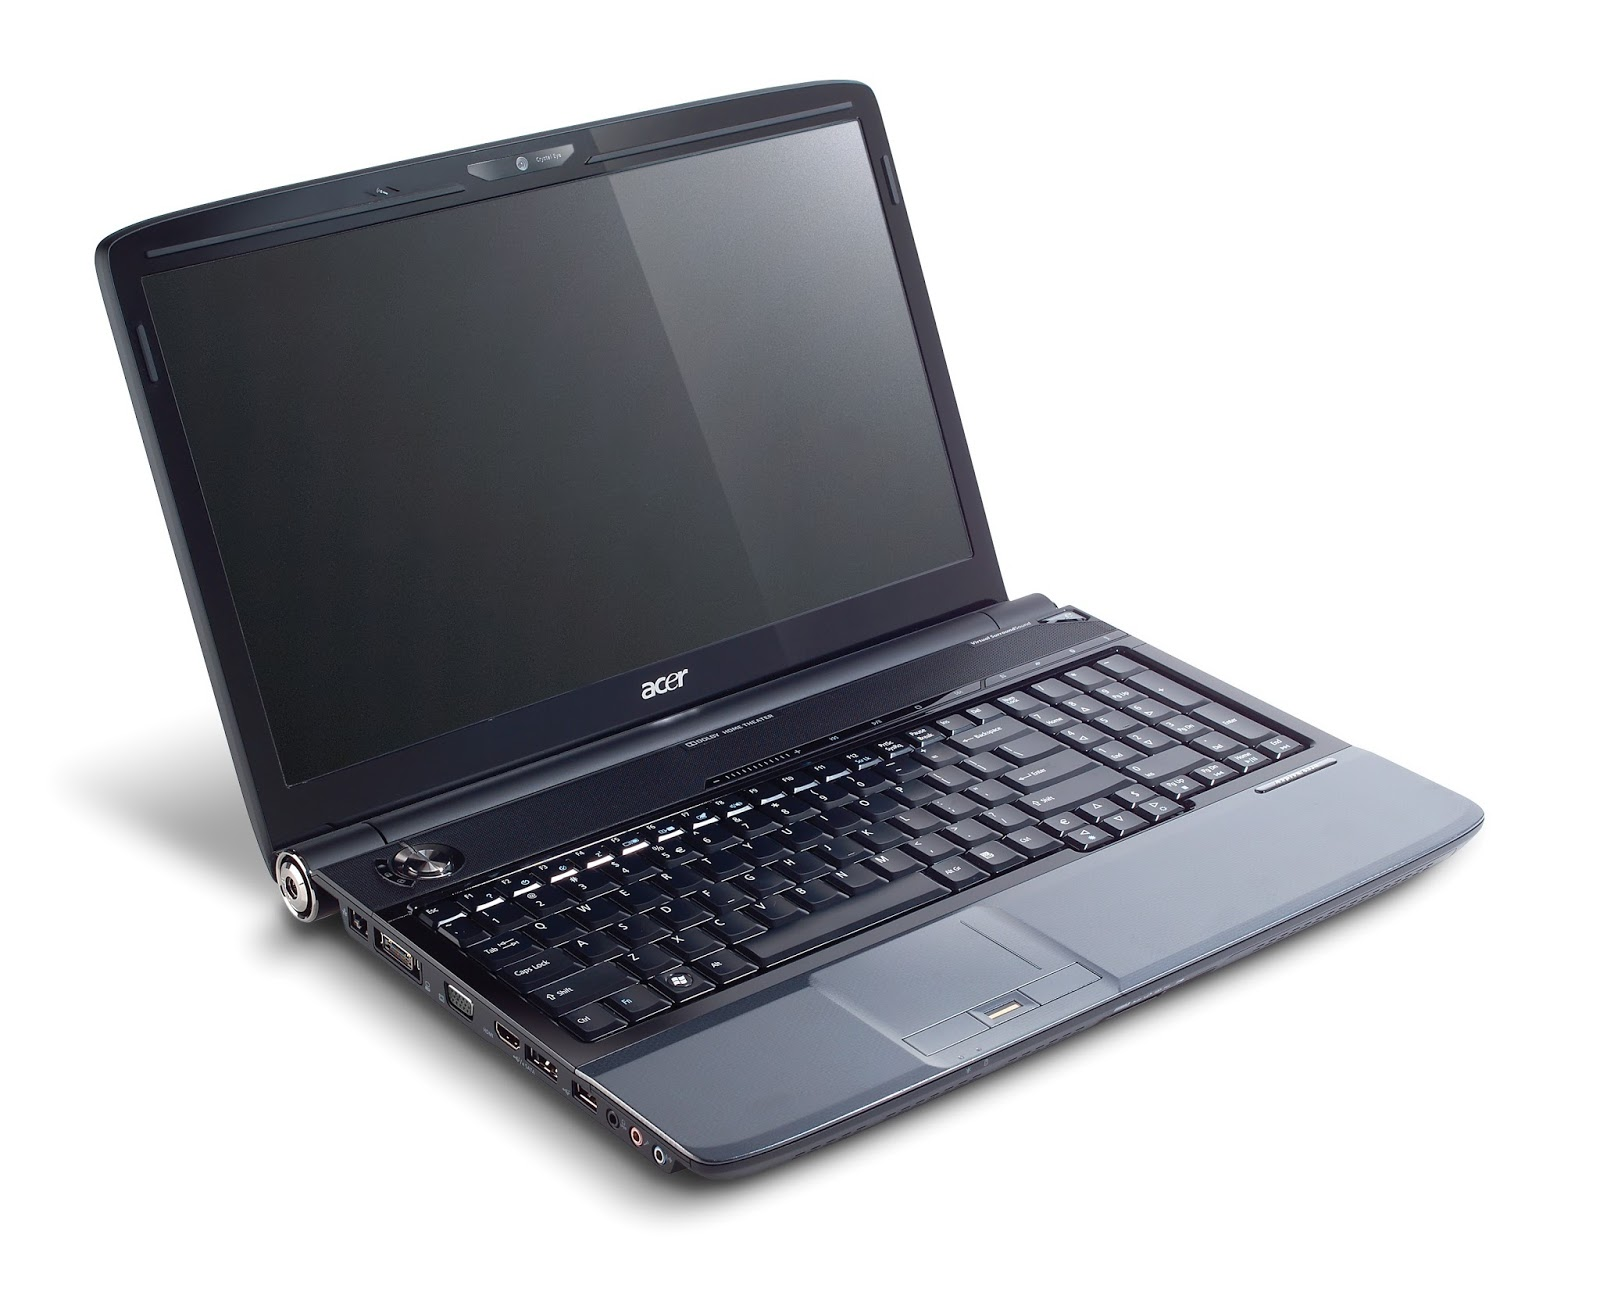 Acer Aspire 7320 Broadcom Bluetooth Windows 7 64-BIT